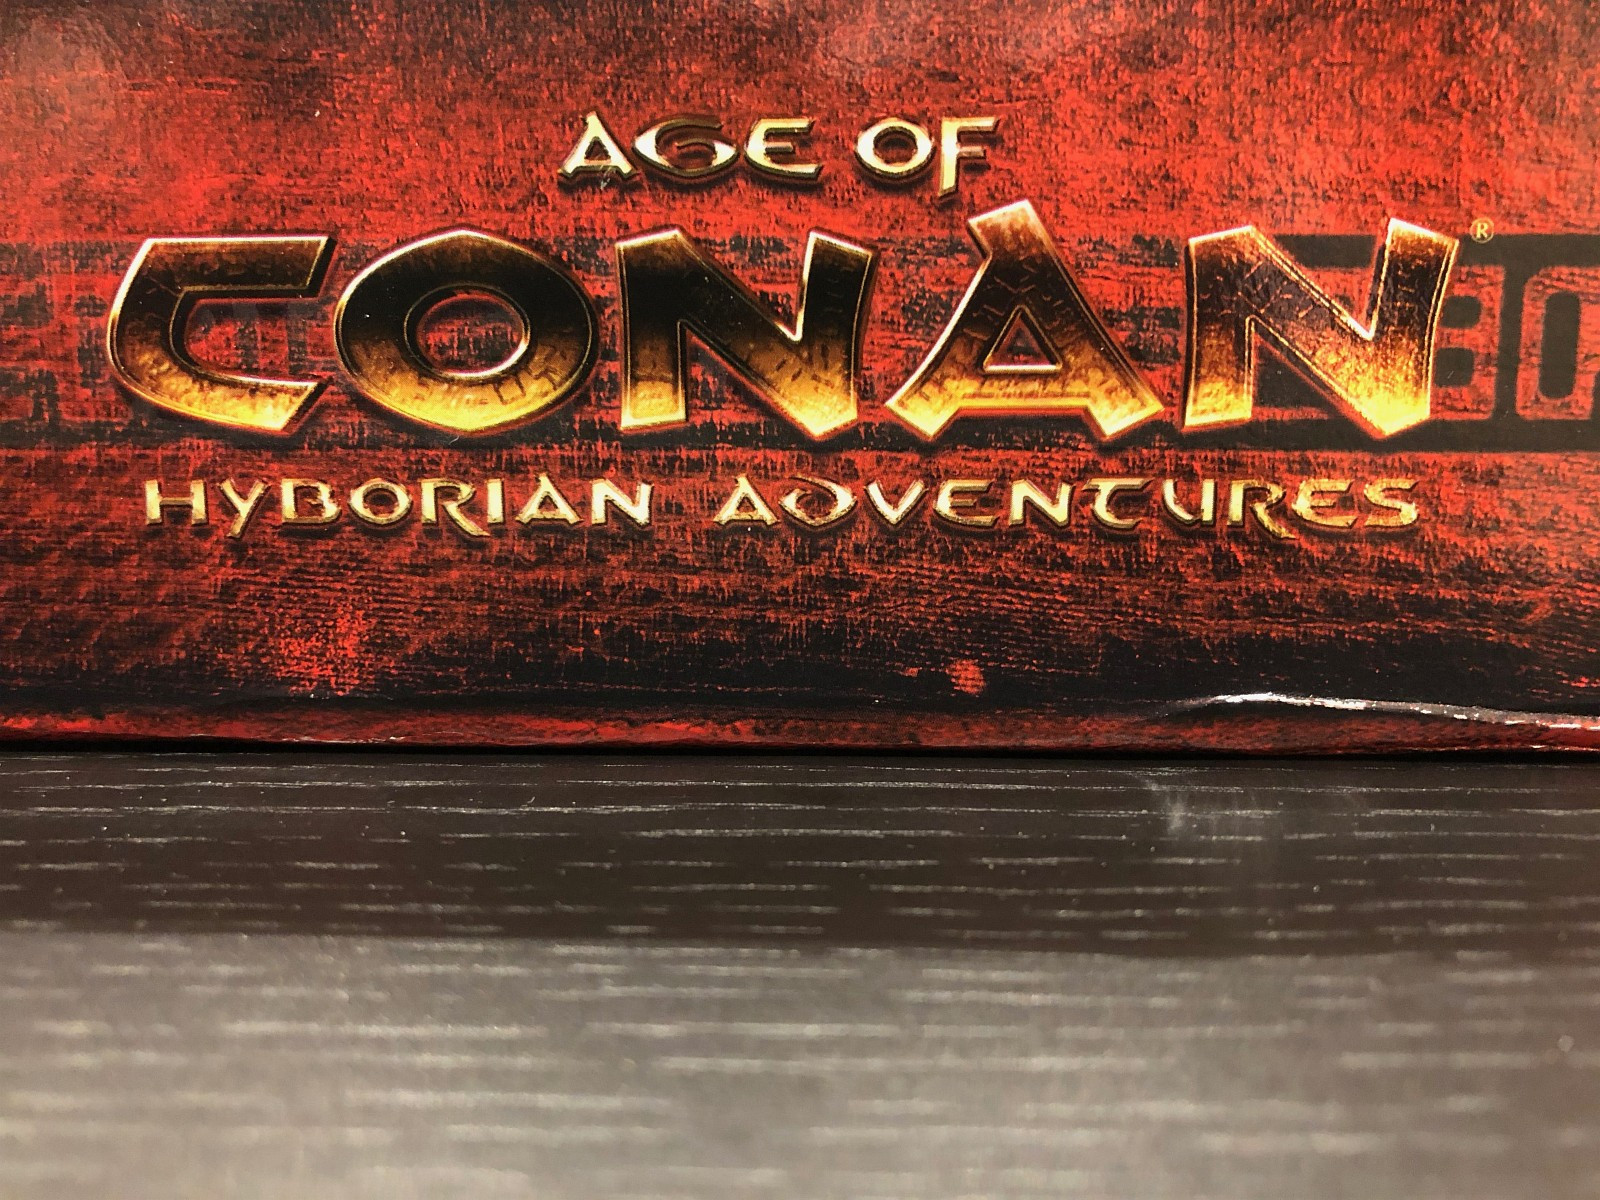 Age of Conan Collectors Edition - Oslo  - Selger Age of Conan limited Collectors Edition, så godt som ubrukt.